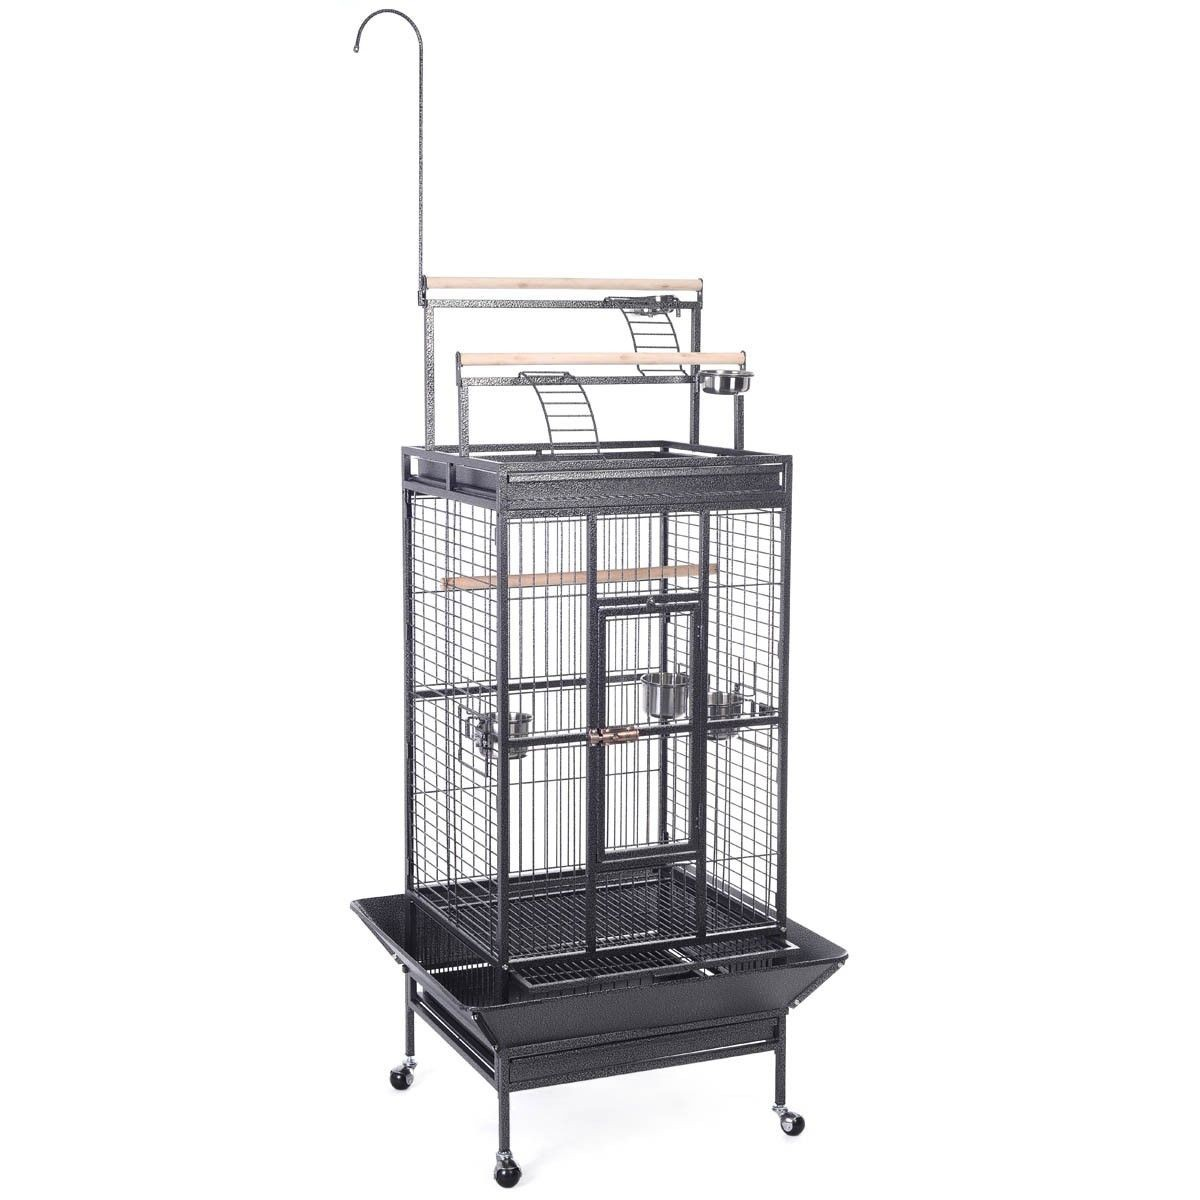 new parrot bird pet cage macaw african grey cage cockatiel house stand lock bl. Black Bedroom Furniture Sets. Home Design Ideas